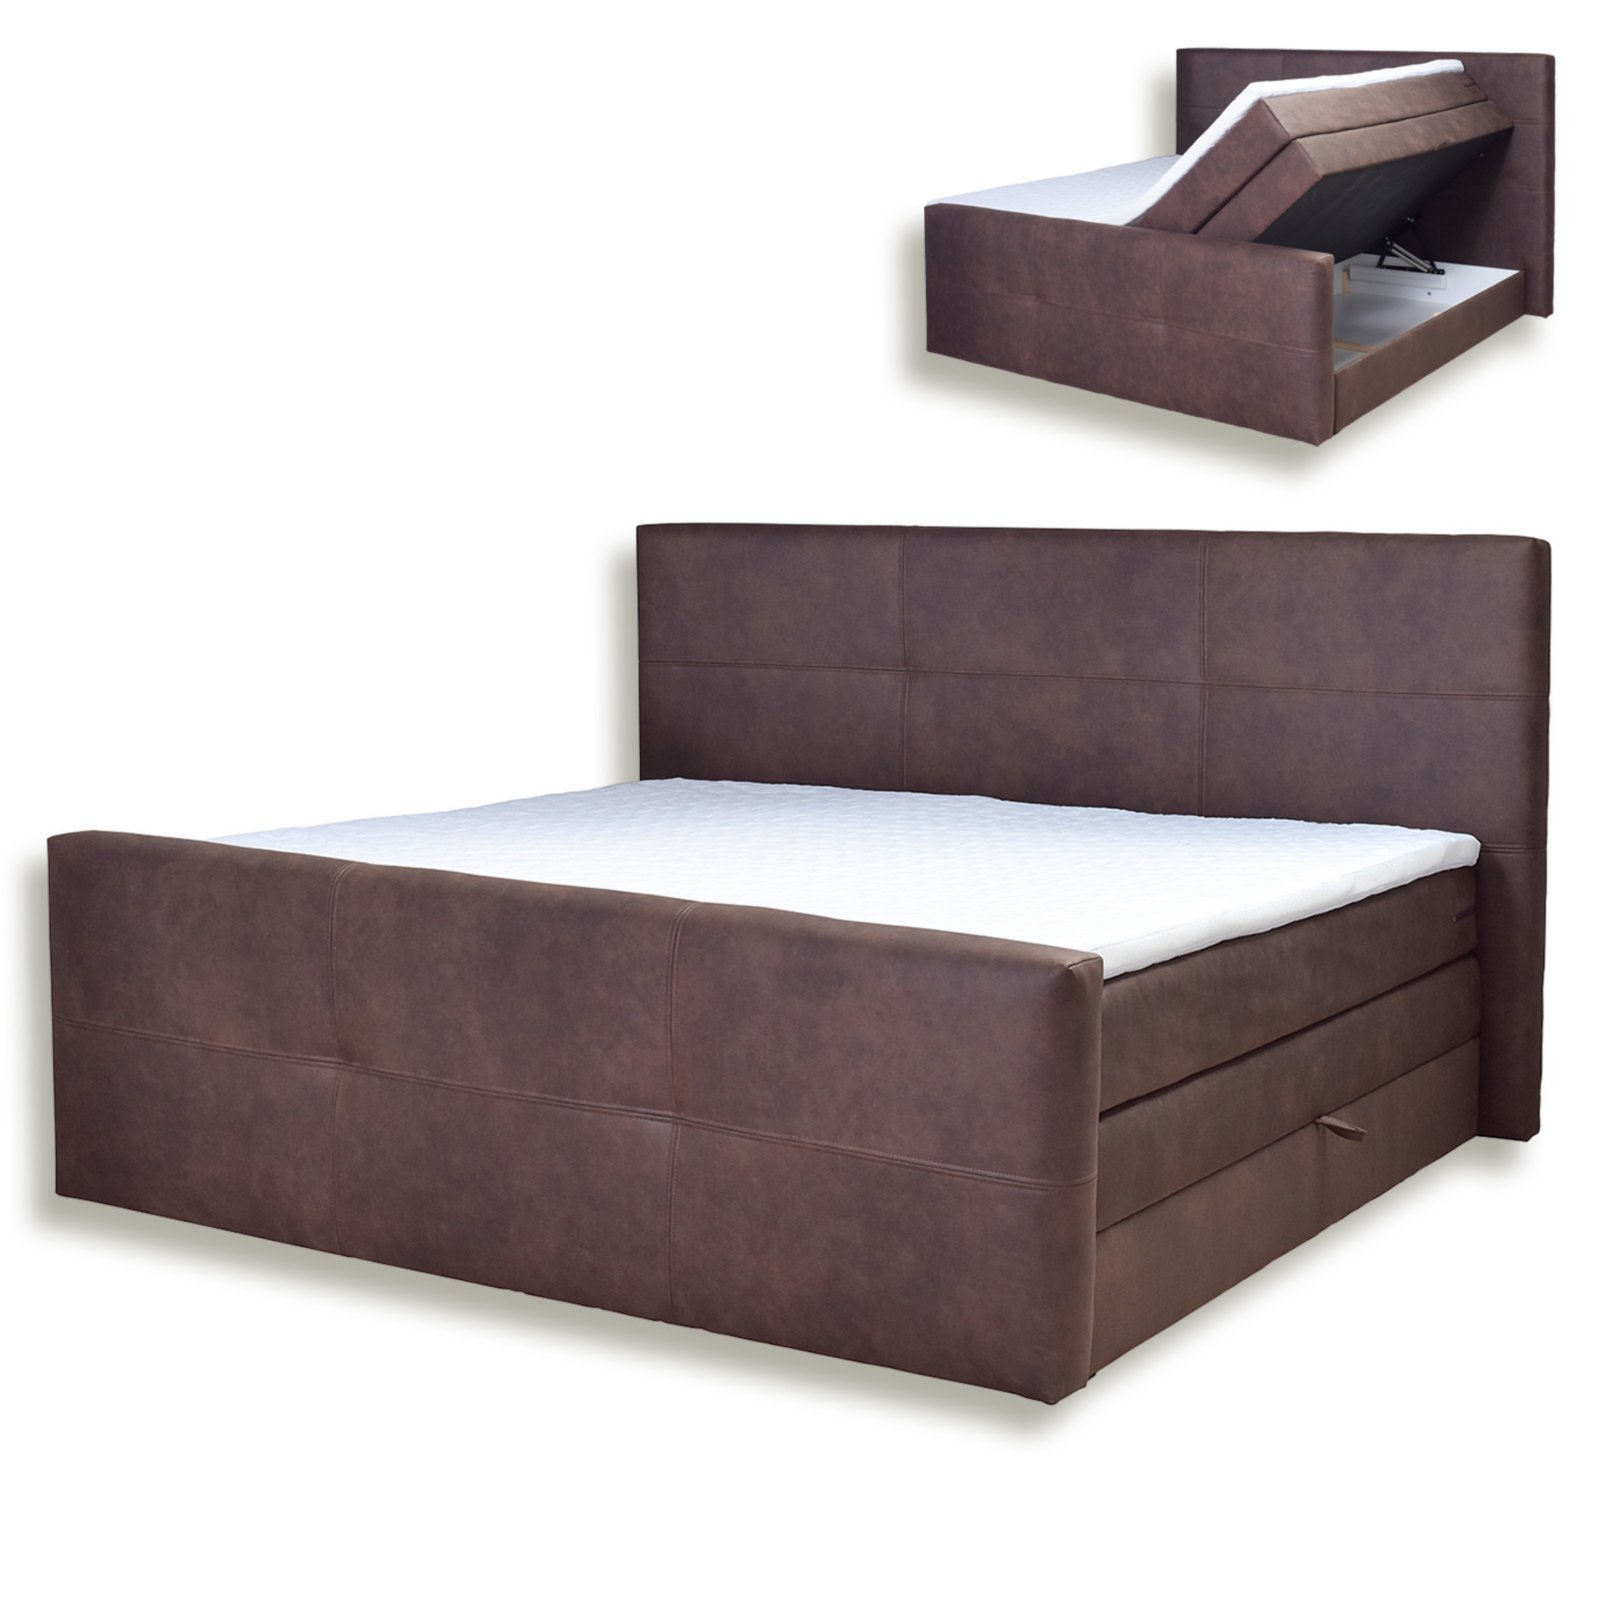 boxspringbett havana dunkelbraun taschenfederkern h3 180x200 cm boxspringbetten. Black Bedroom Furniture Sets. Home Design Ideas